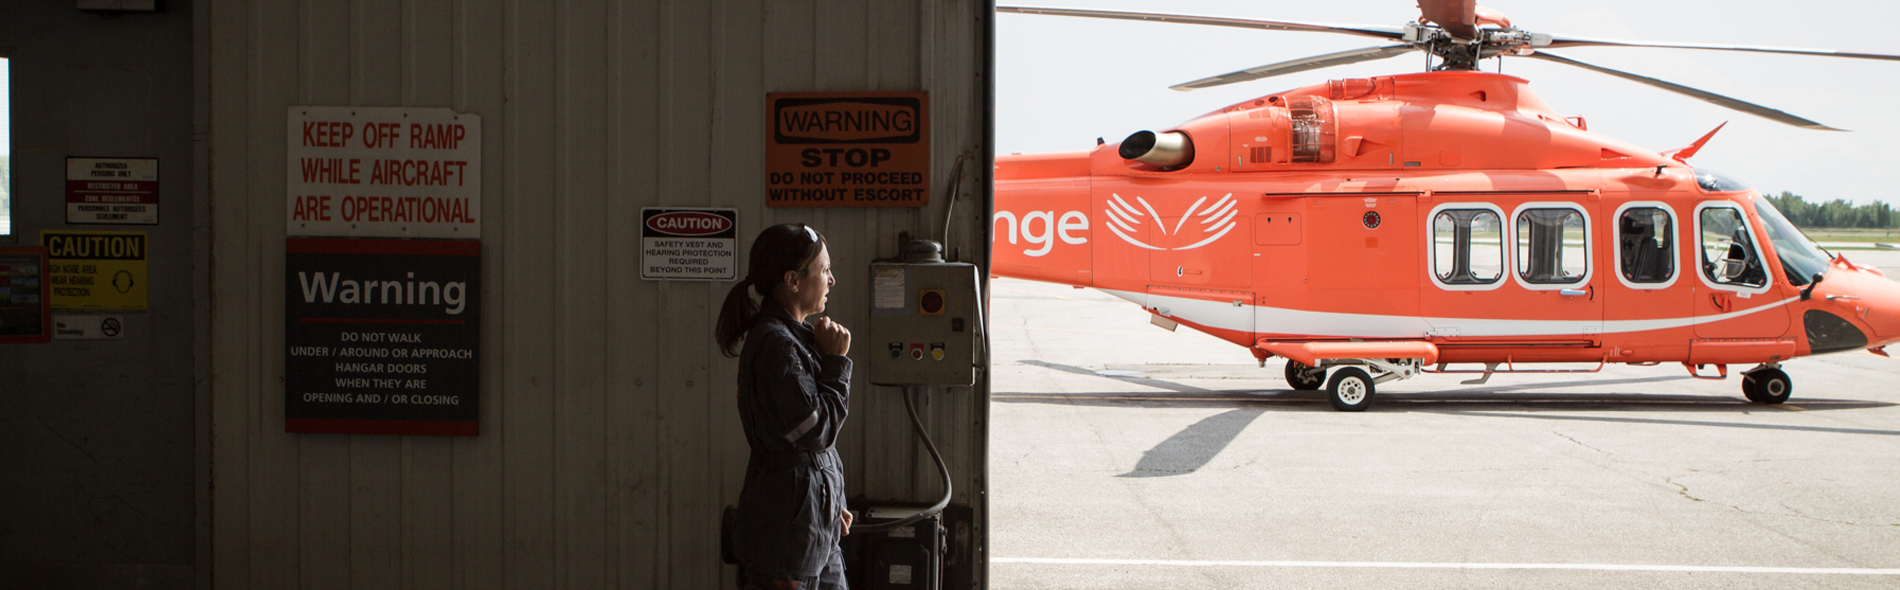 An Ornge employee talking with a headset on